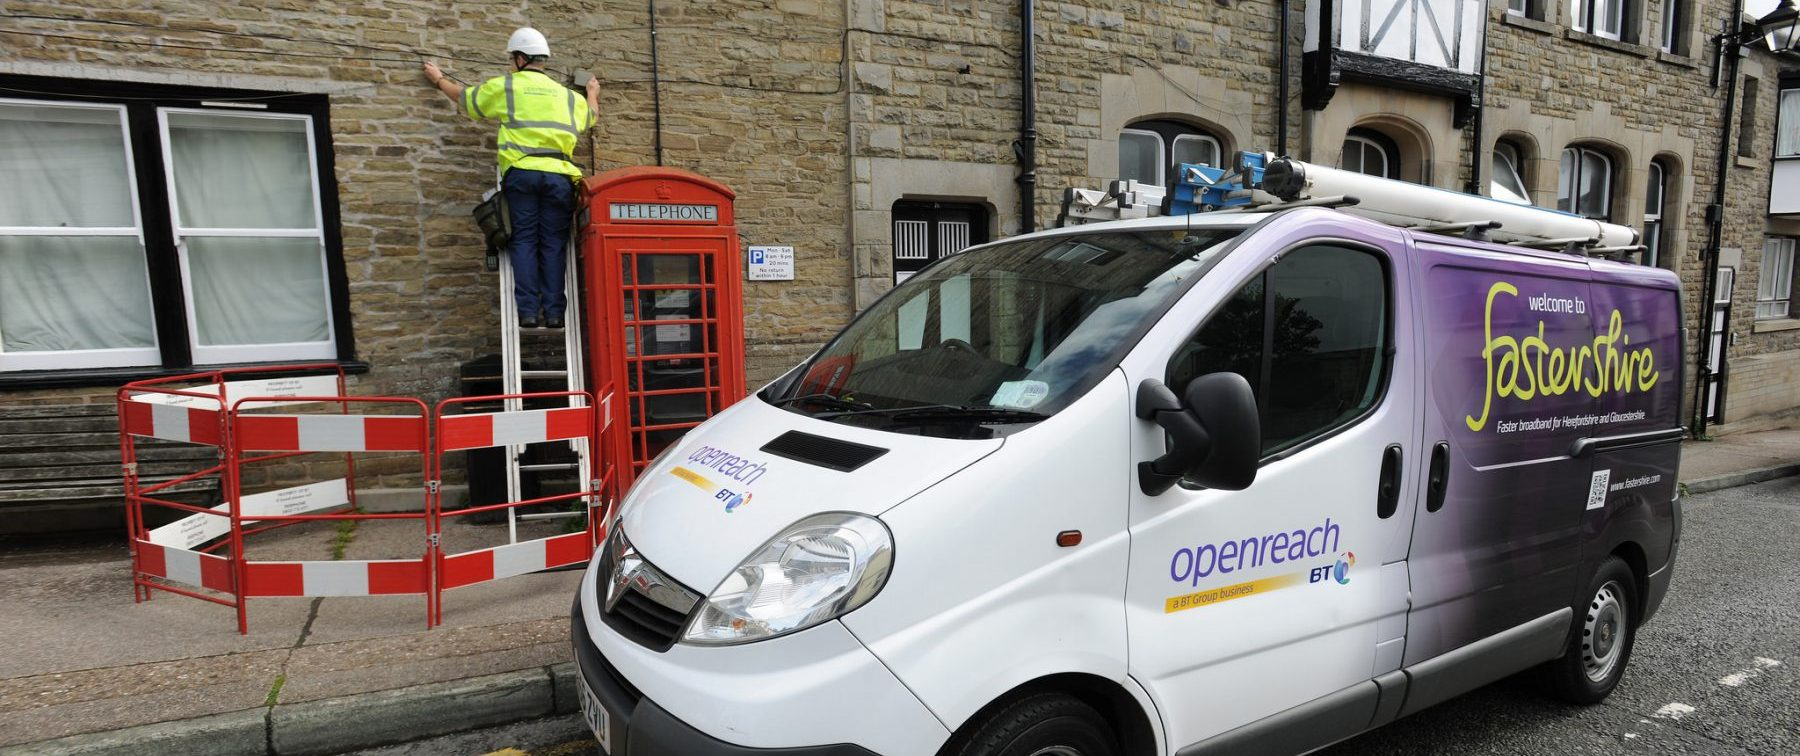 OpenReach Business Broadband Engineer with a Fastershire van